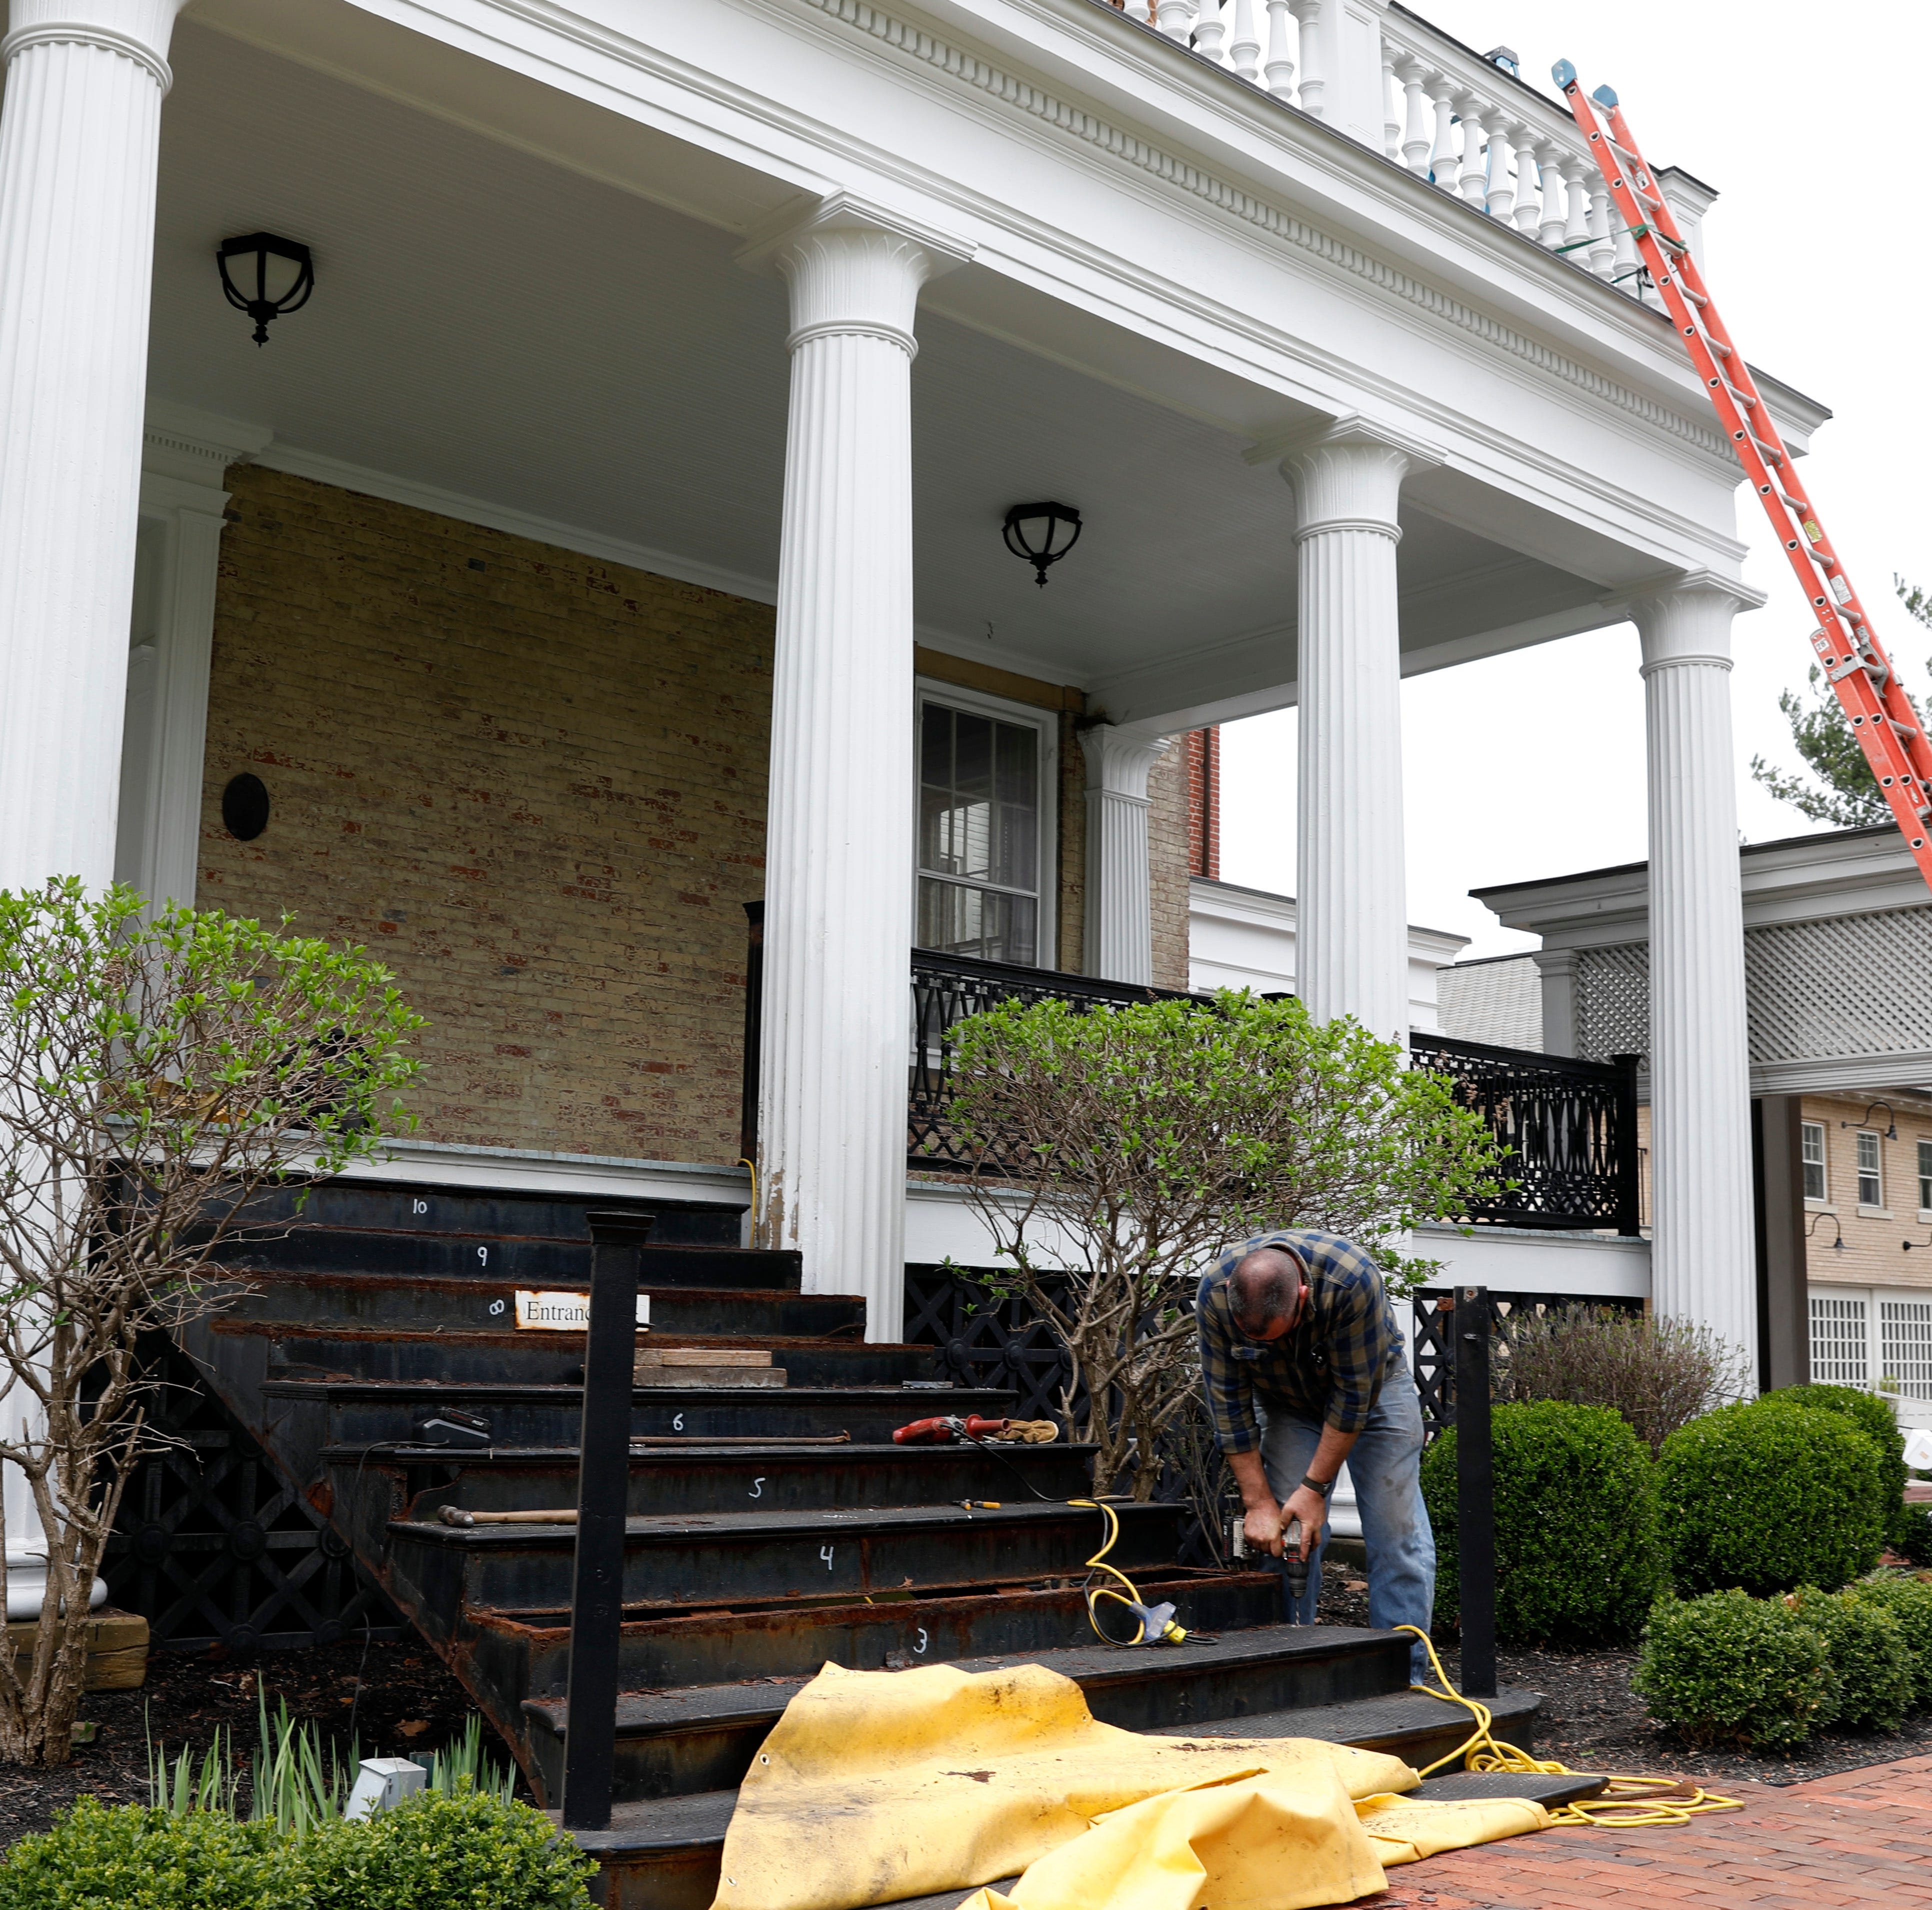 DACO and Company Wrench owner team up to repair museum steps